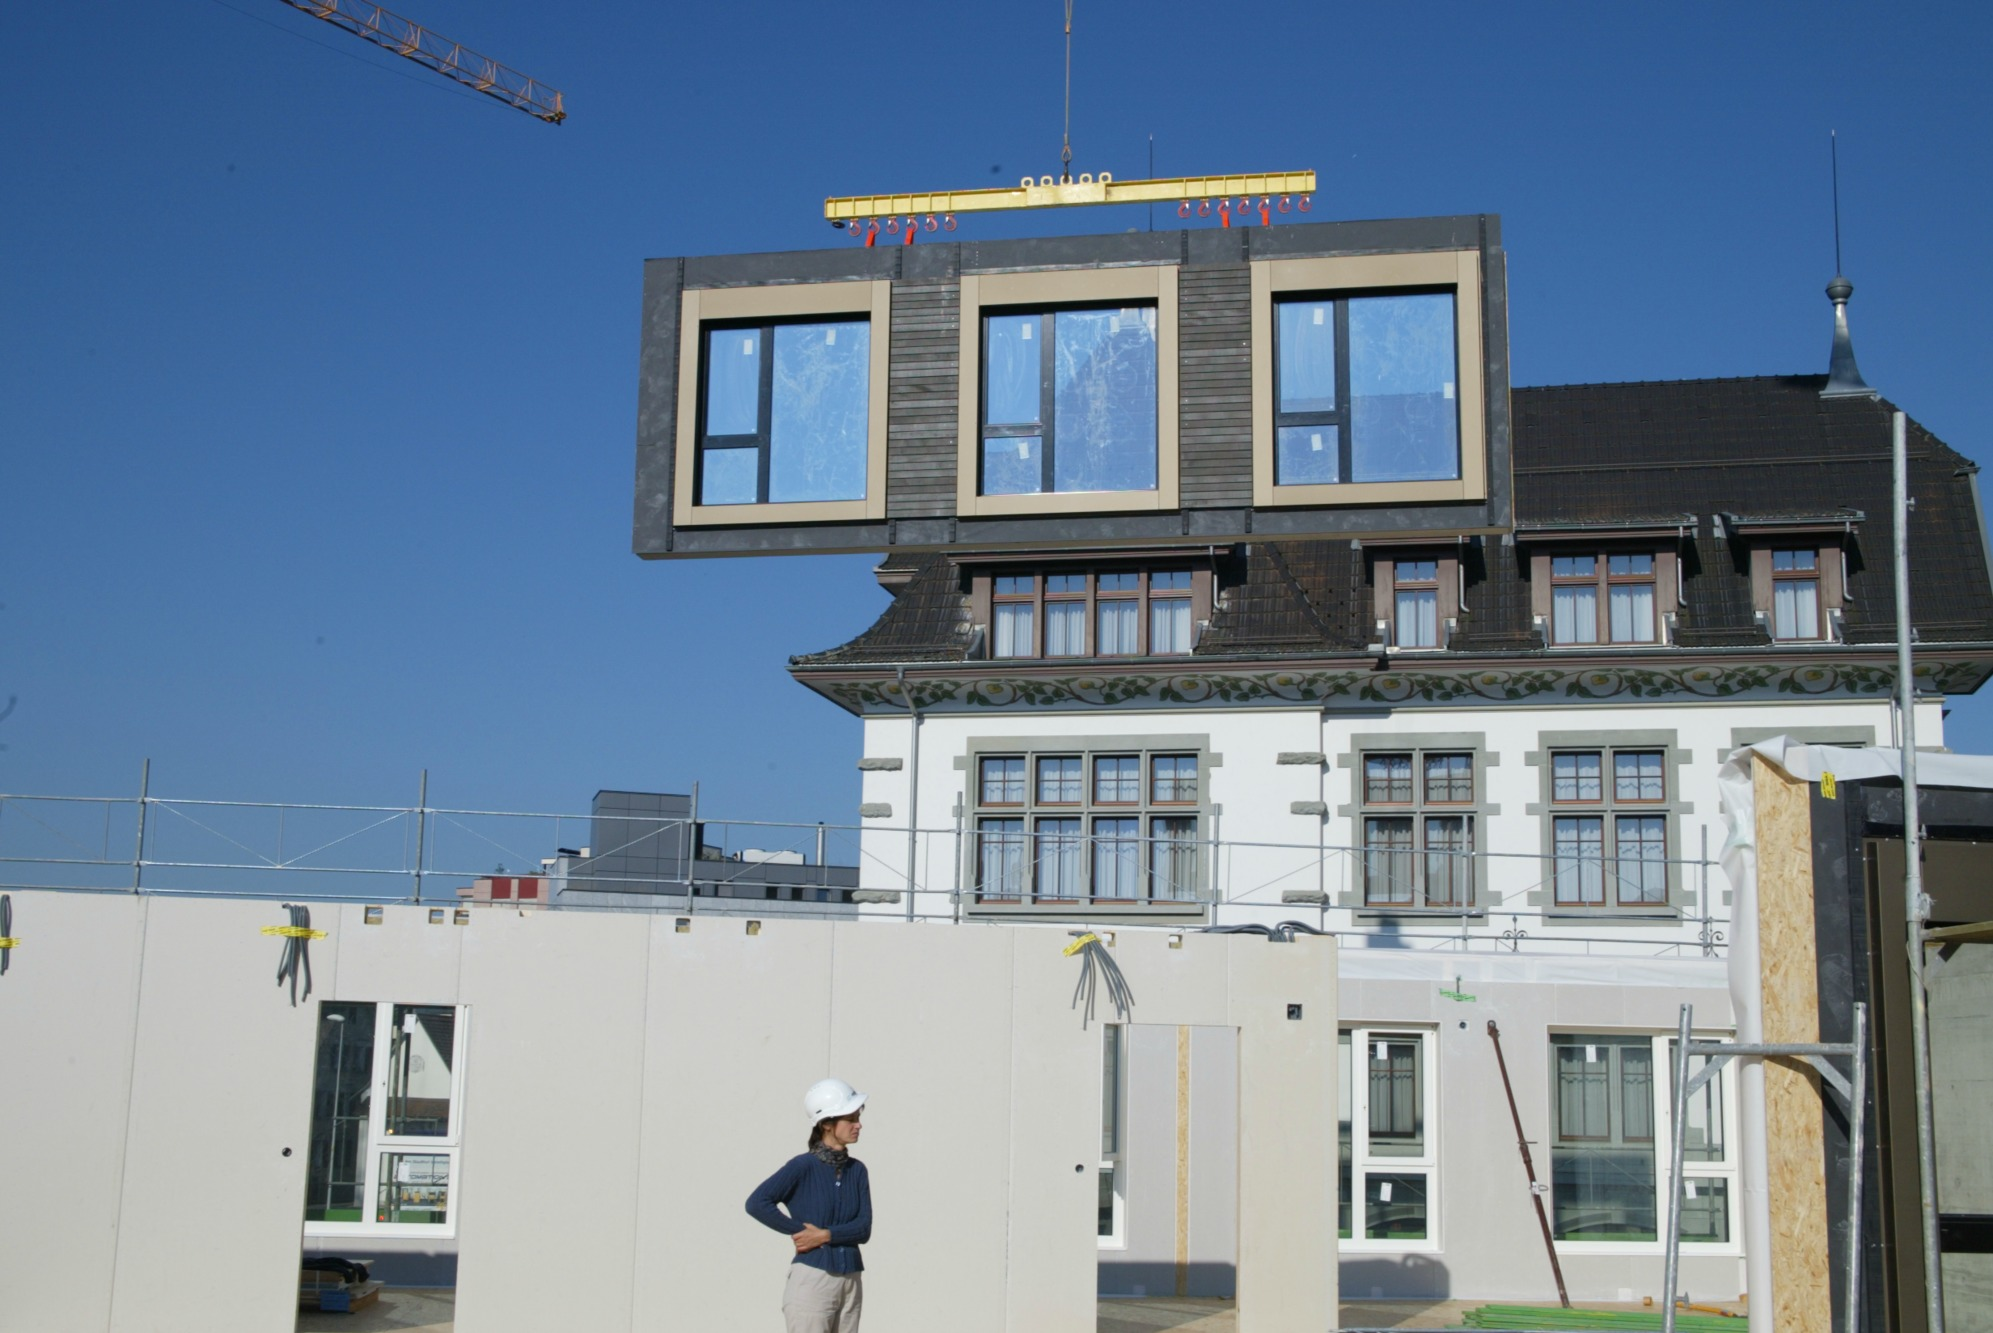 An exterior wall element with three built-in windows and facades hangs on a crane.